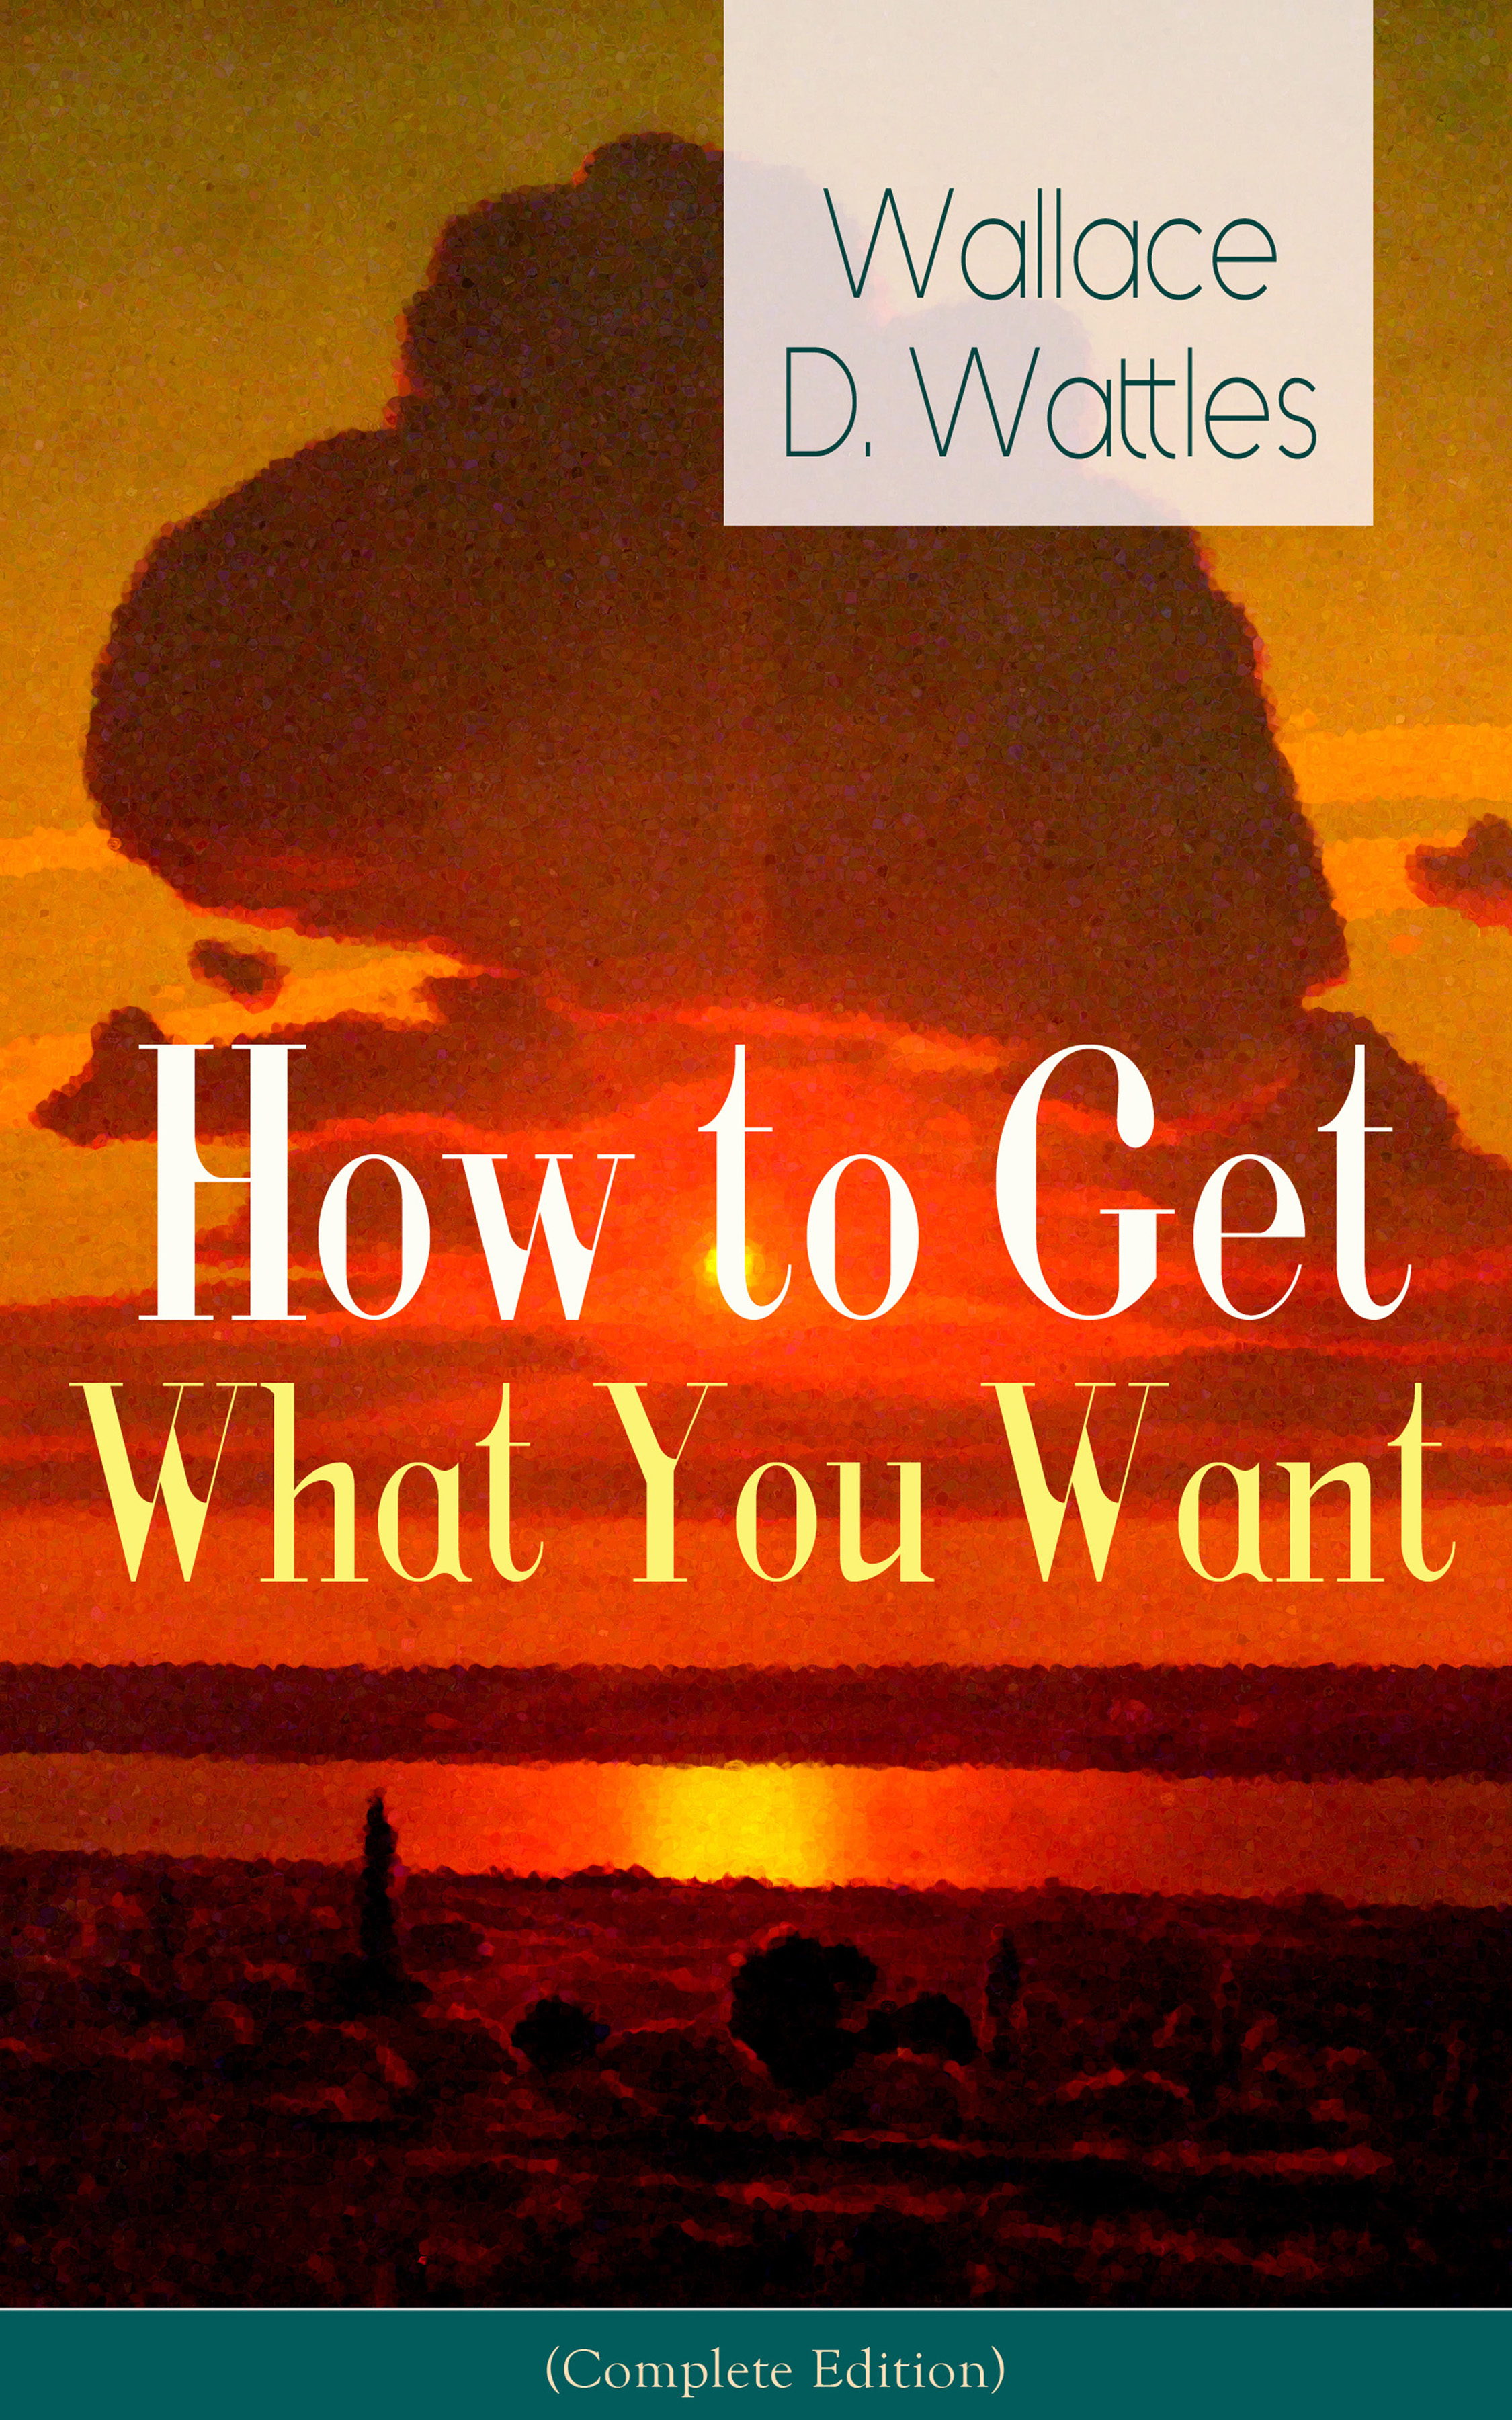 Wallace D. Wattles How to Get What You Want (Complete Edition): From one of The New Thought pioneers, author of The Science of Getting Rich, The Science of Being Well, The Science of Being Great, Hellfire Harrison, How to Promote Yourself and A New Christ gill hasson happiness how to get into the habit of being happy